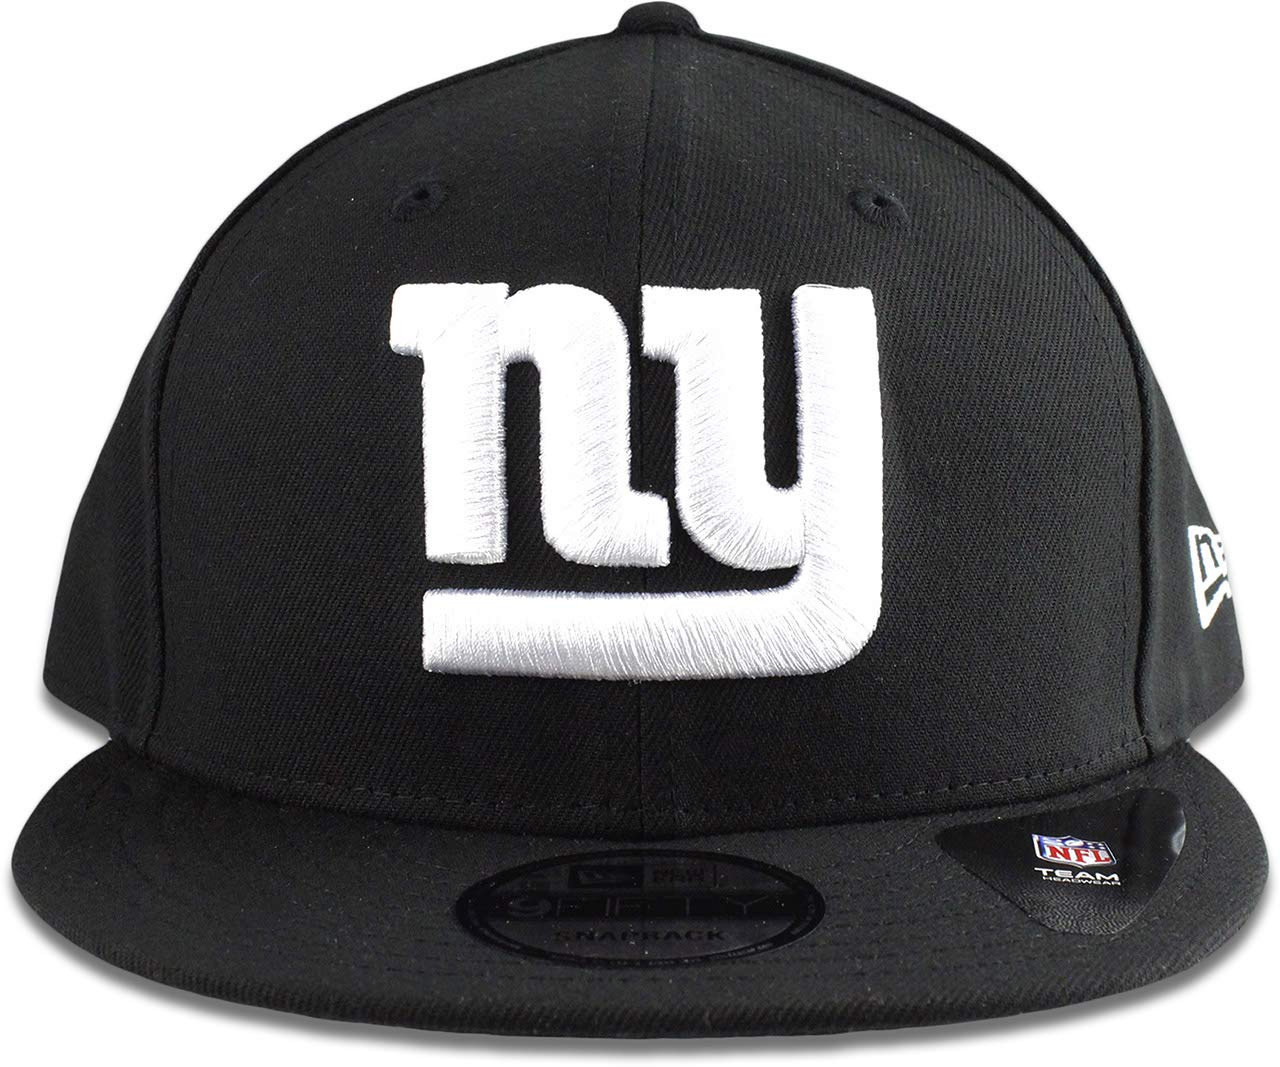 269588261f4e0 Amazon.com   New Era New York Giants Hat NFL Black White 9FIFTY Snapback  Adjustable Cap Adult One Size   Sports   Outdoors